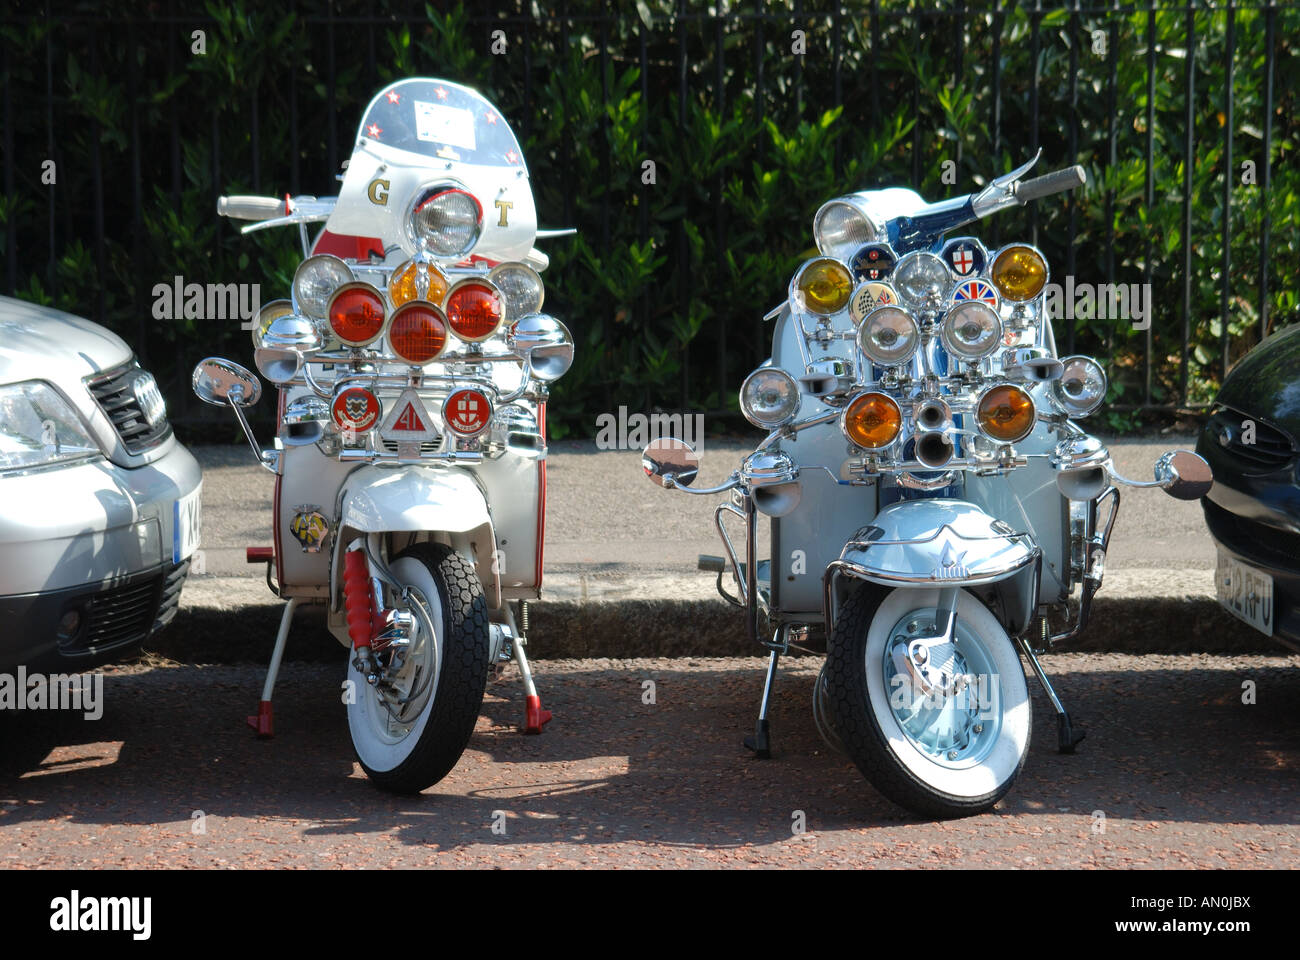 Mod Scooters - Stock Image